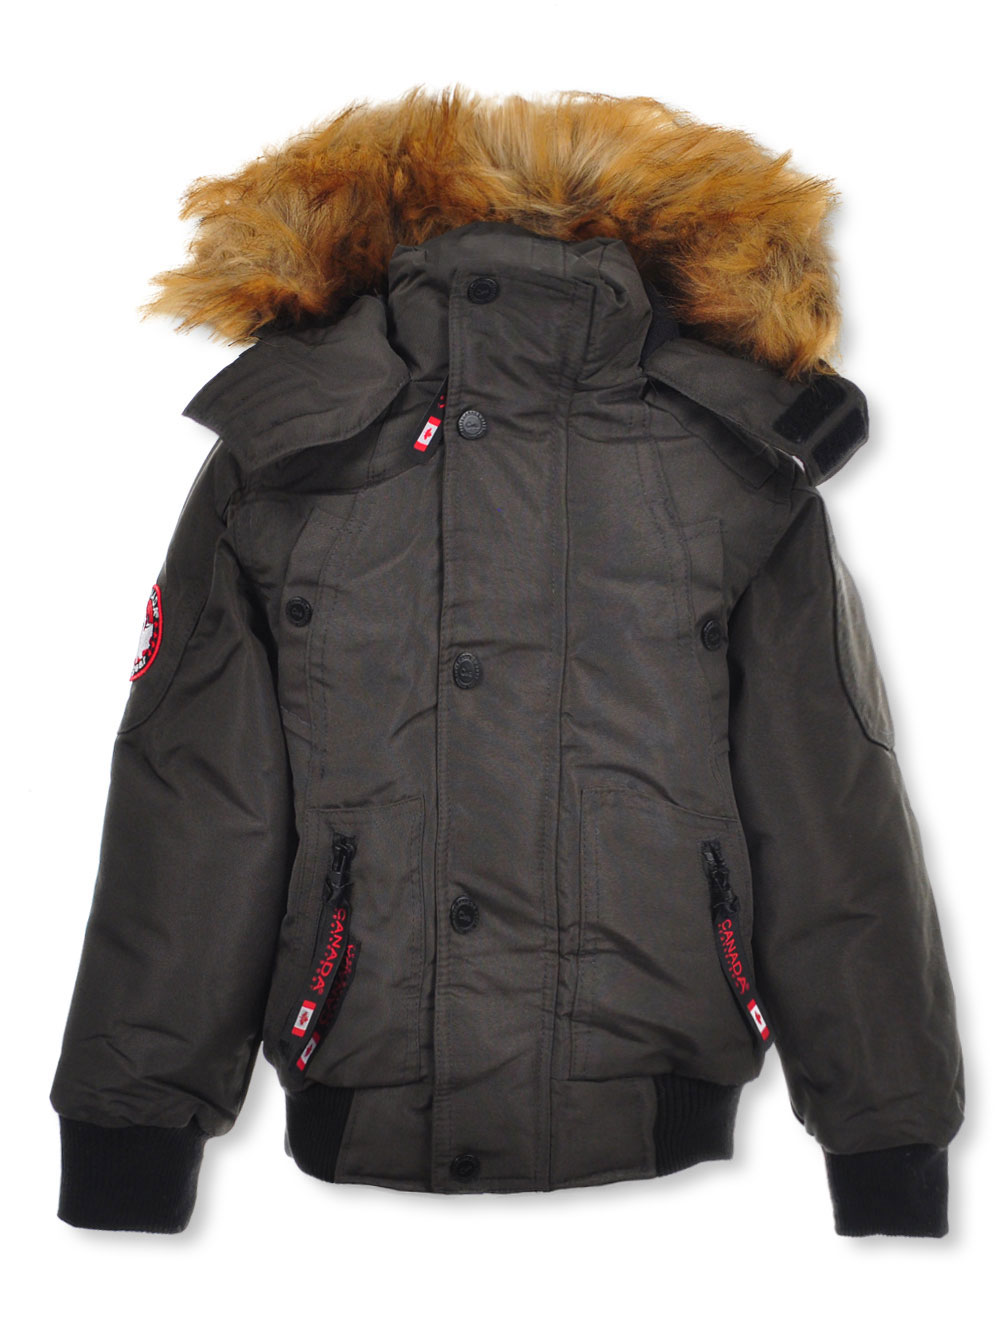 ad3c6a5e6 Canada Weather Gear Boys' Insulated Jacket